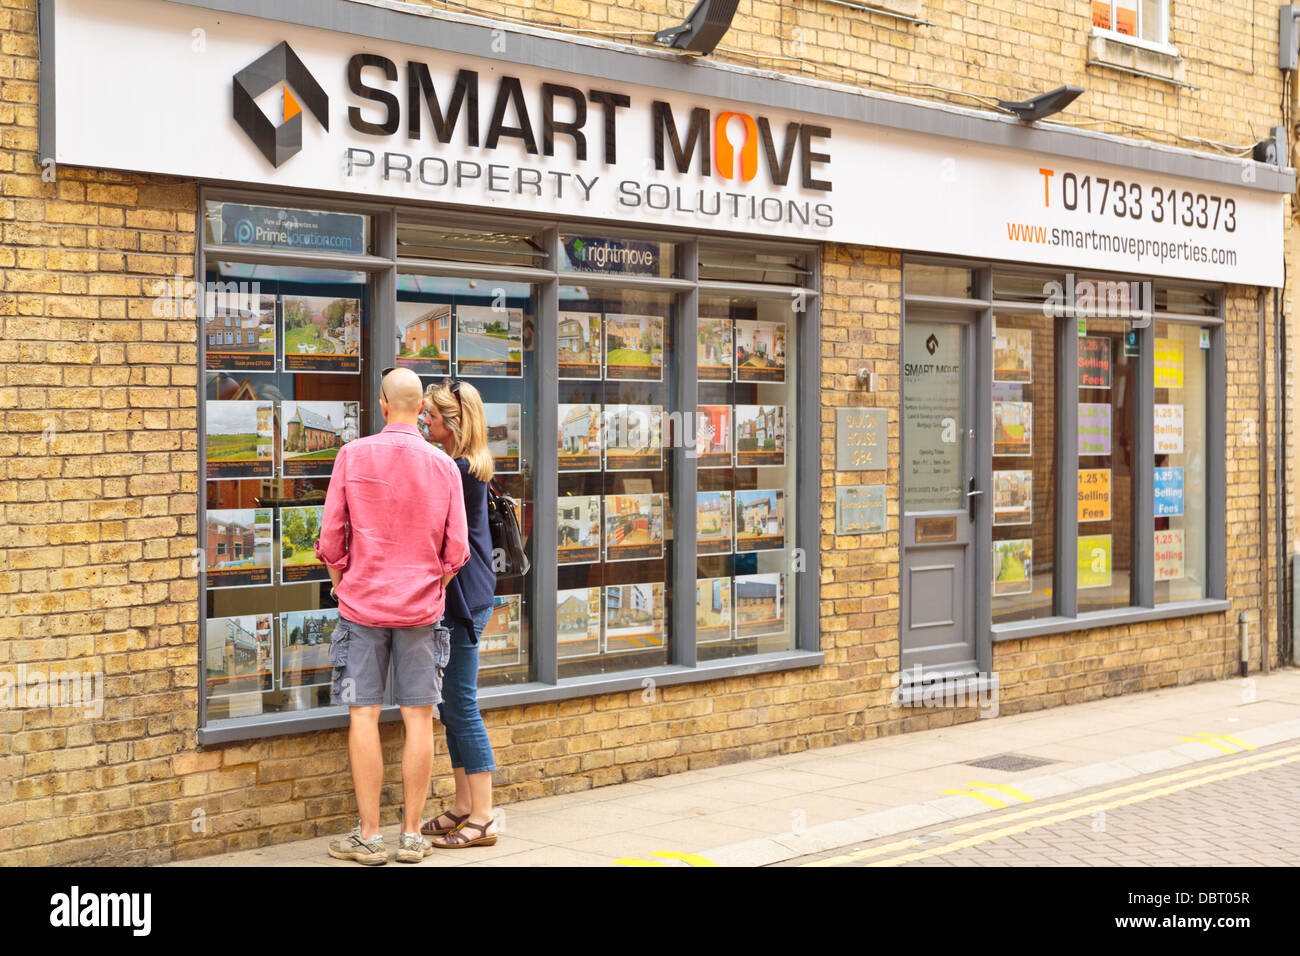 Couple looking at properties for sale or rent at an estate agent shop window, Peterborough, England - Stock Image